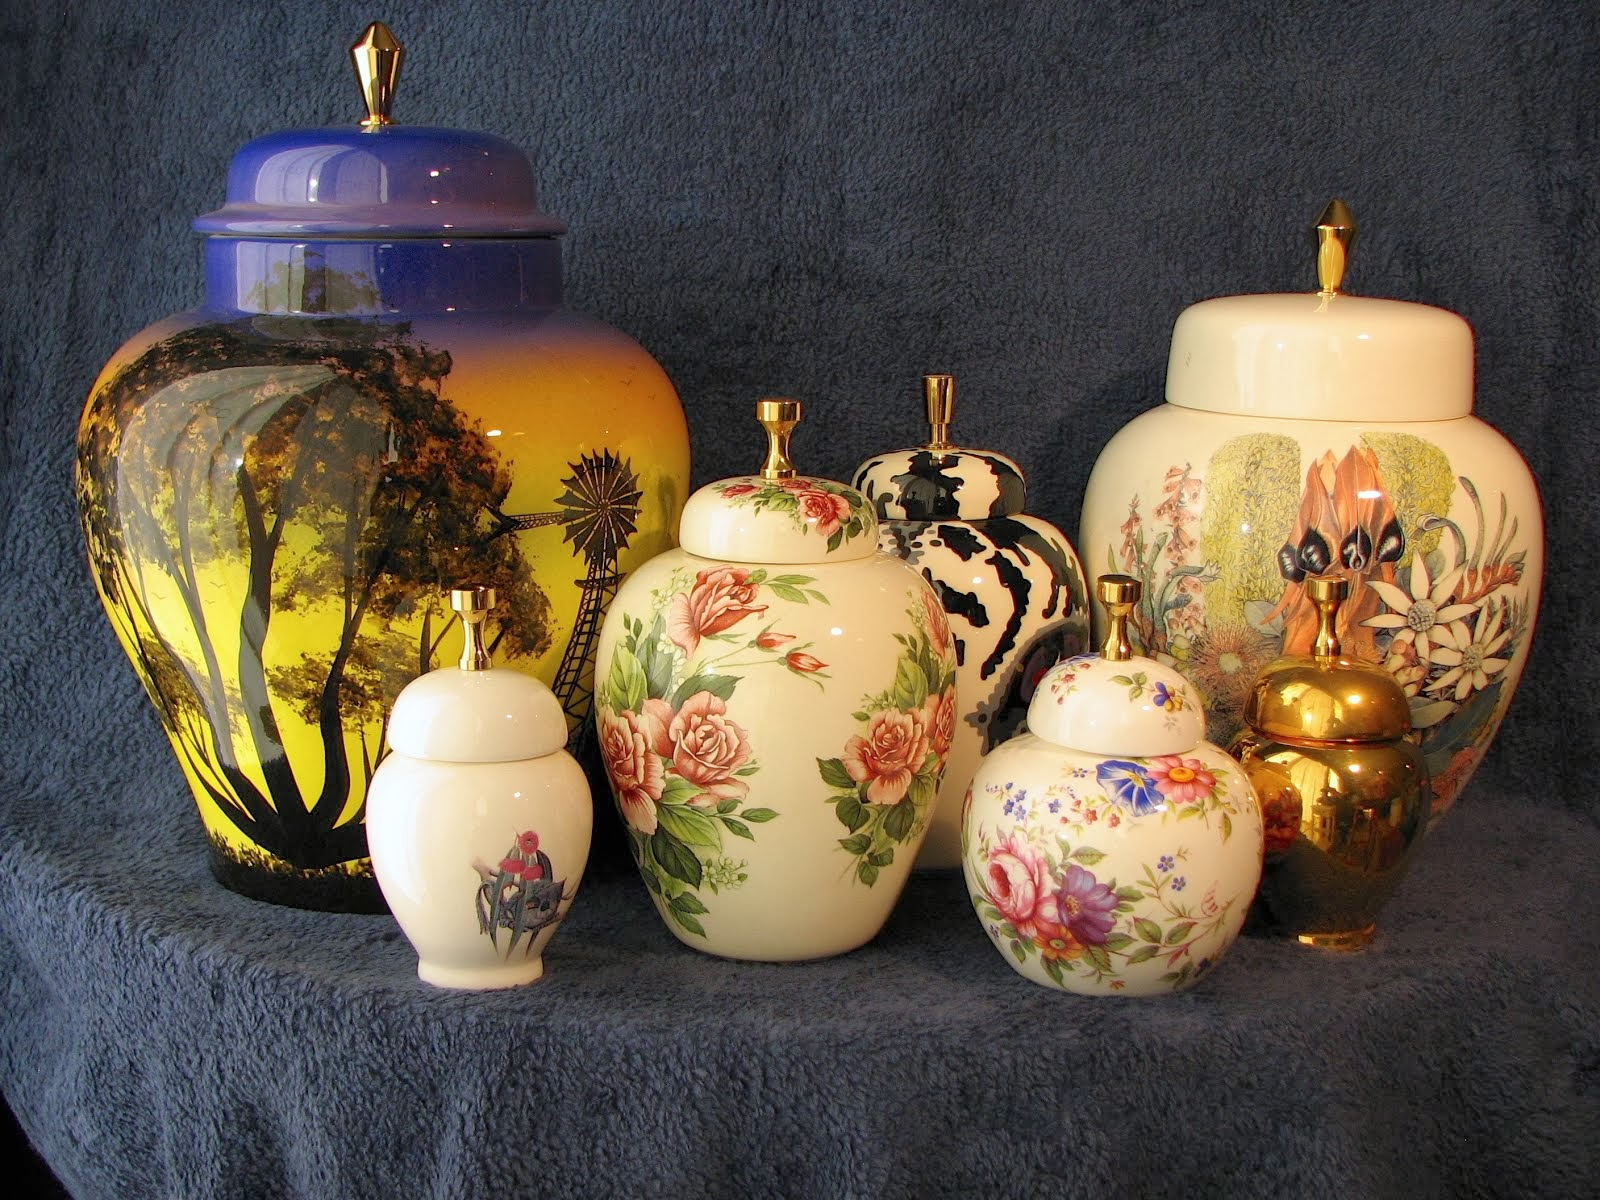 Handmade Ceramic Memorial Urns